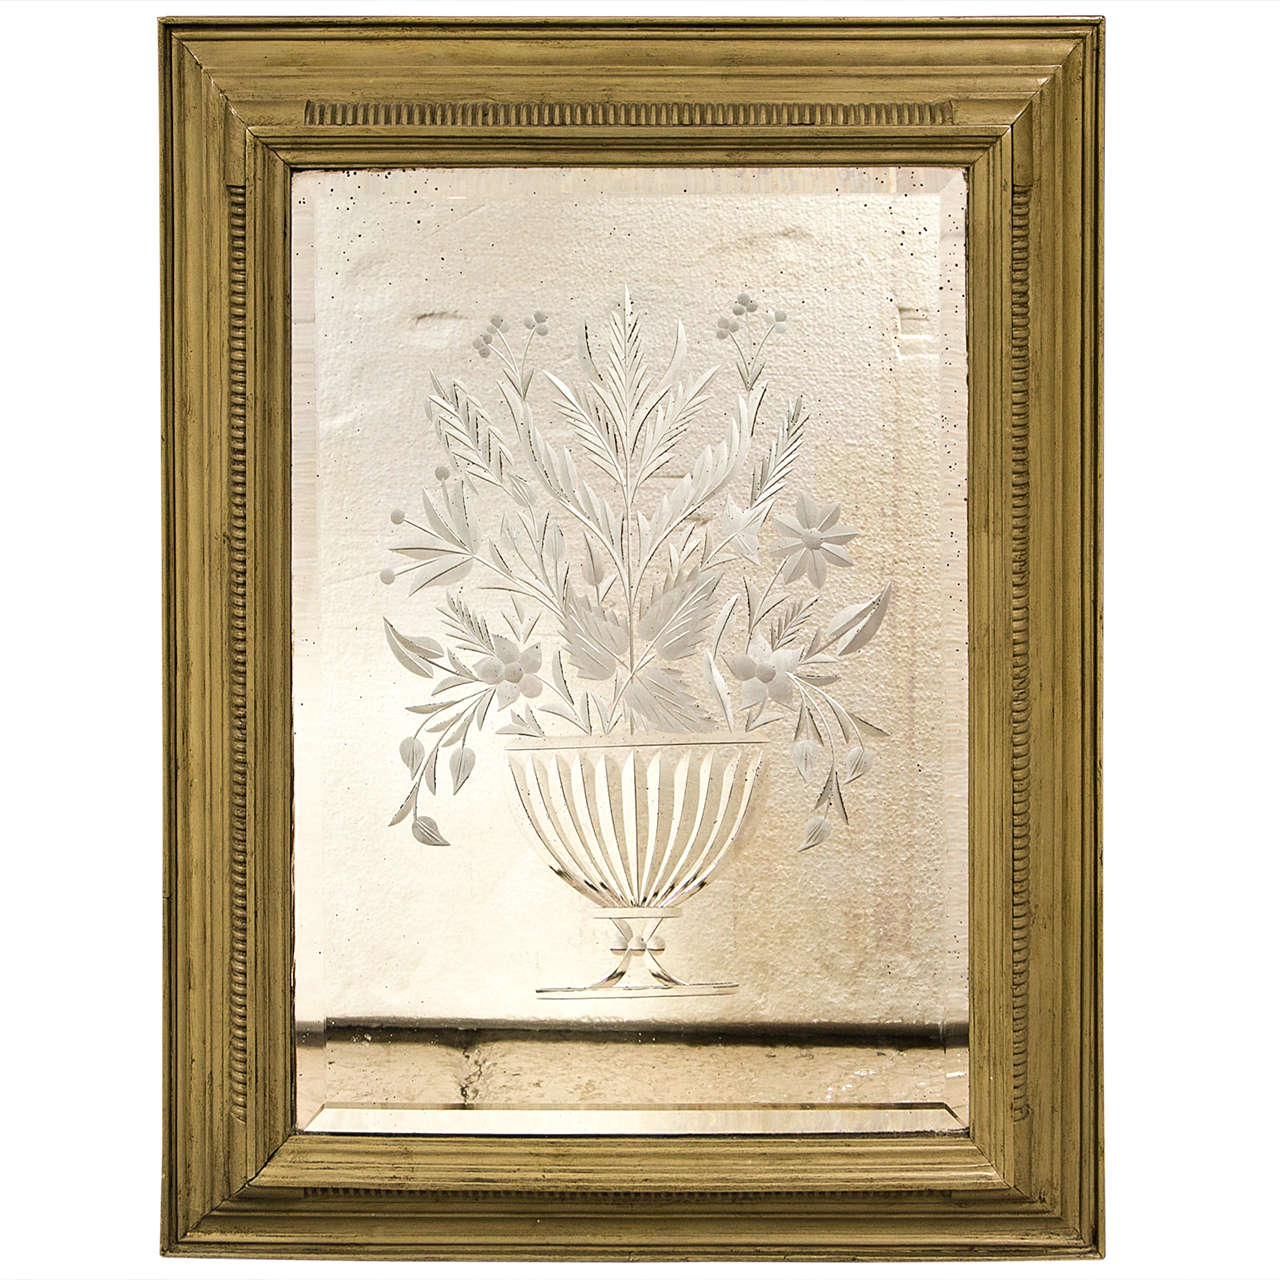 Decorative framed etching mirror for sale at 1stdibs for Fancy wall mirrors for sale